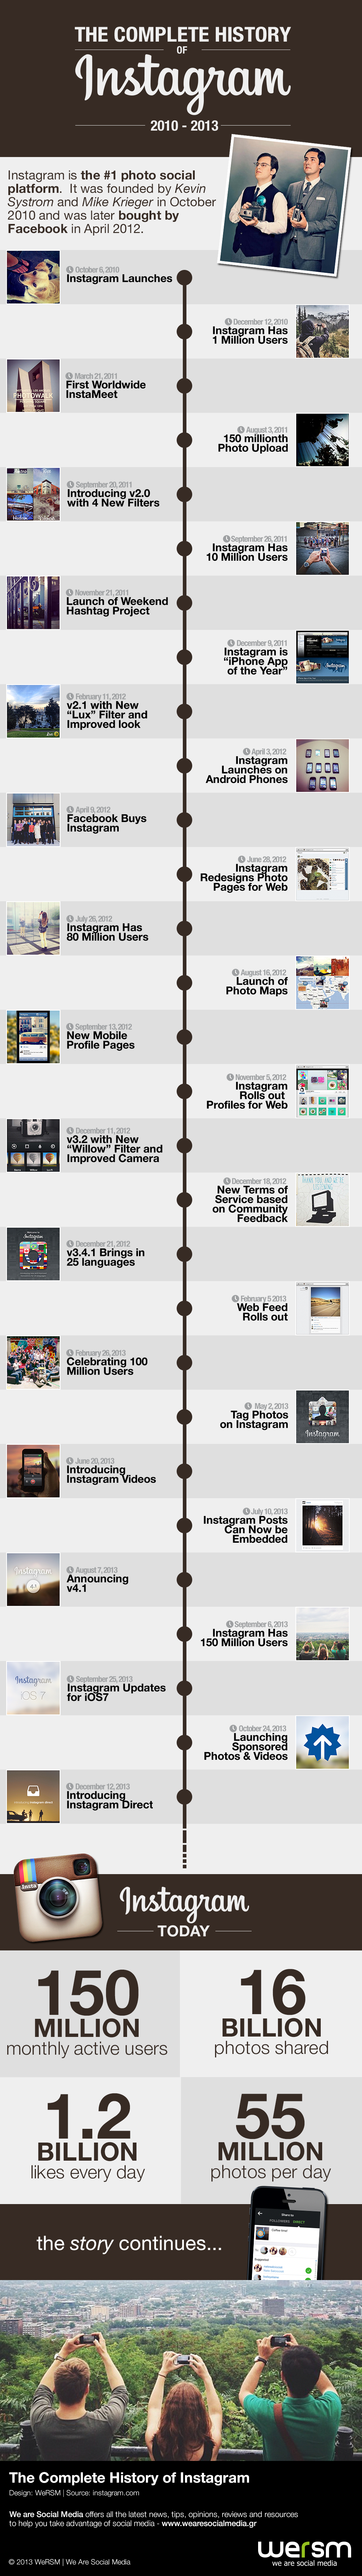 the success of instagram through its timeline infographic